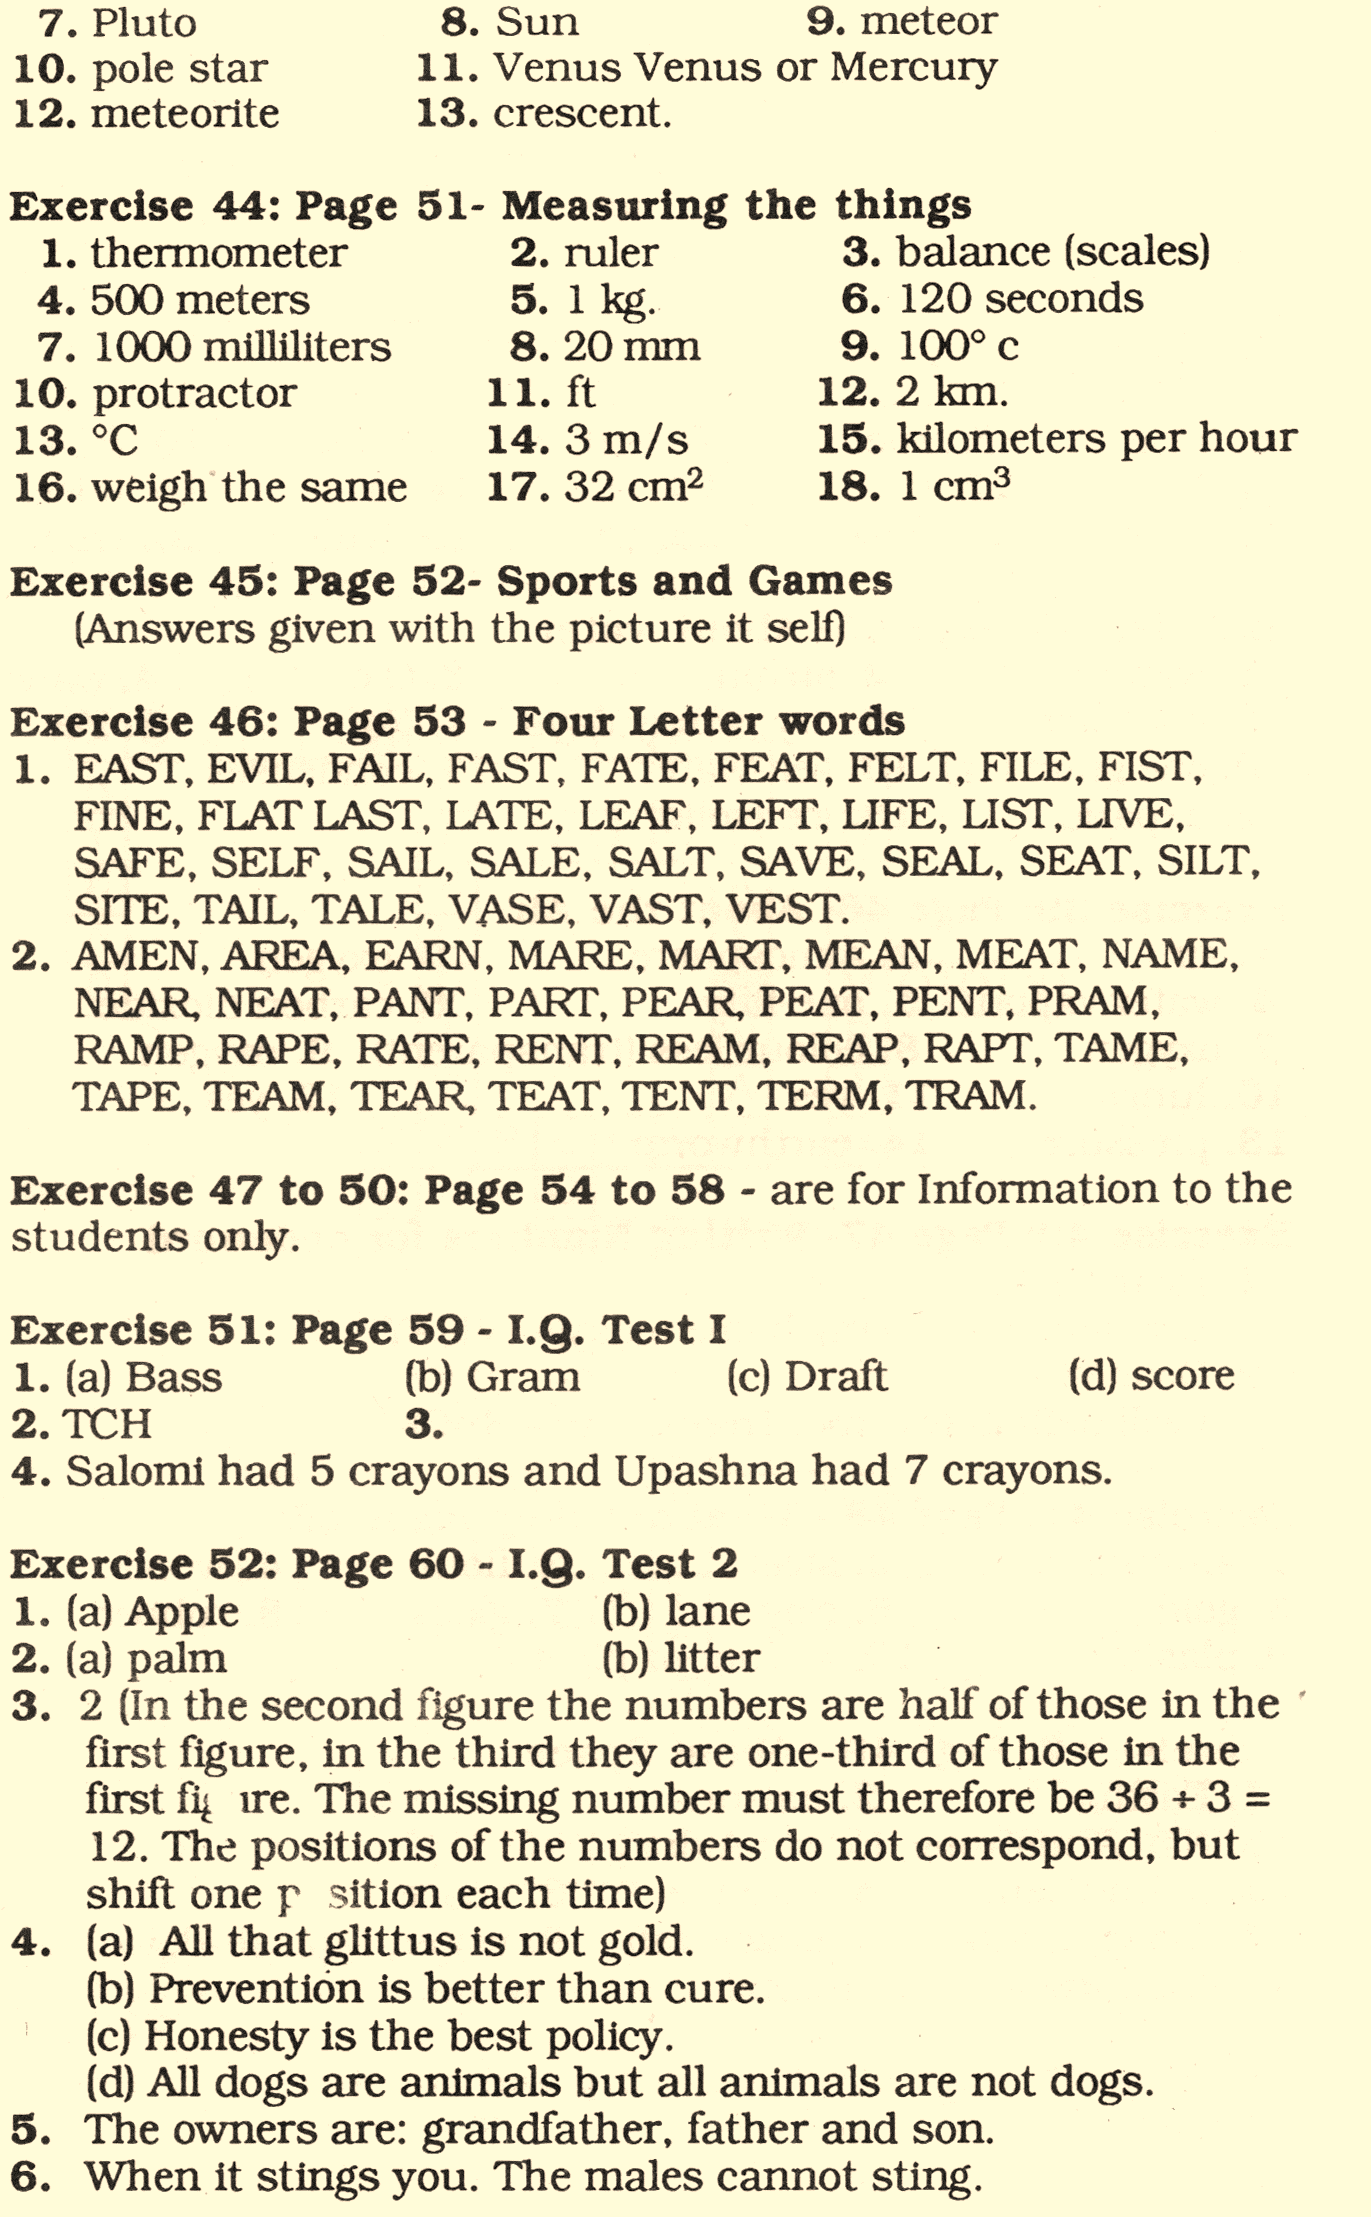 ANSWER KEY TO EKTA GENERAL KNOWLEDGE AND I Q  TESTS (BOOK 6